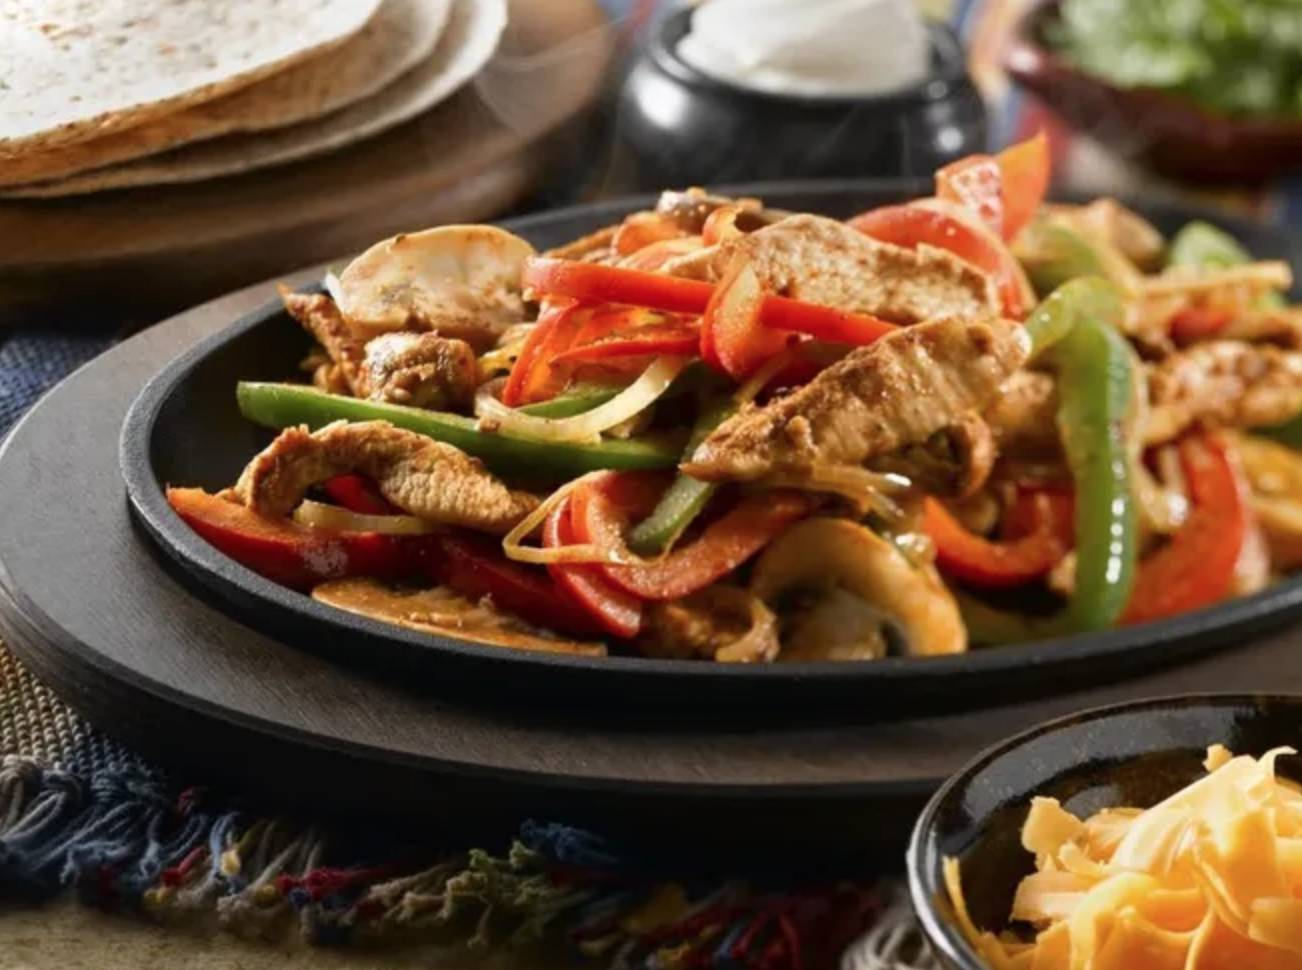 Wednesday Special: Fajita Deluxe